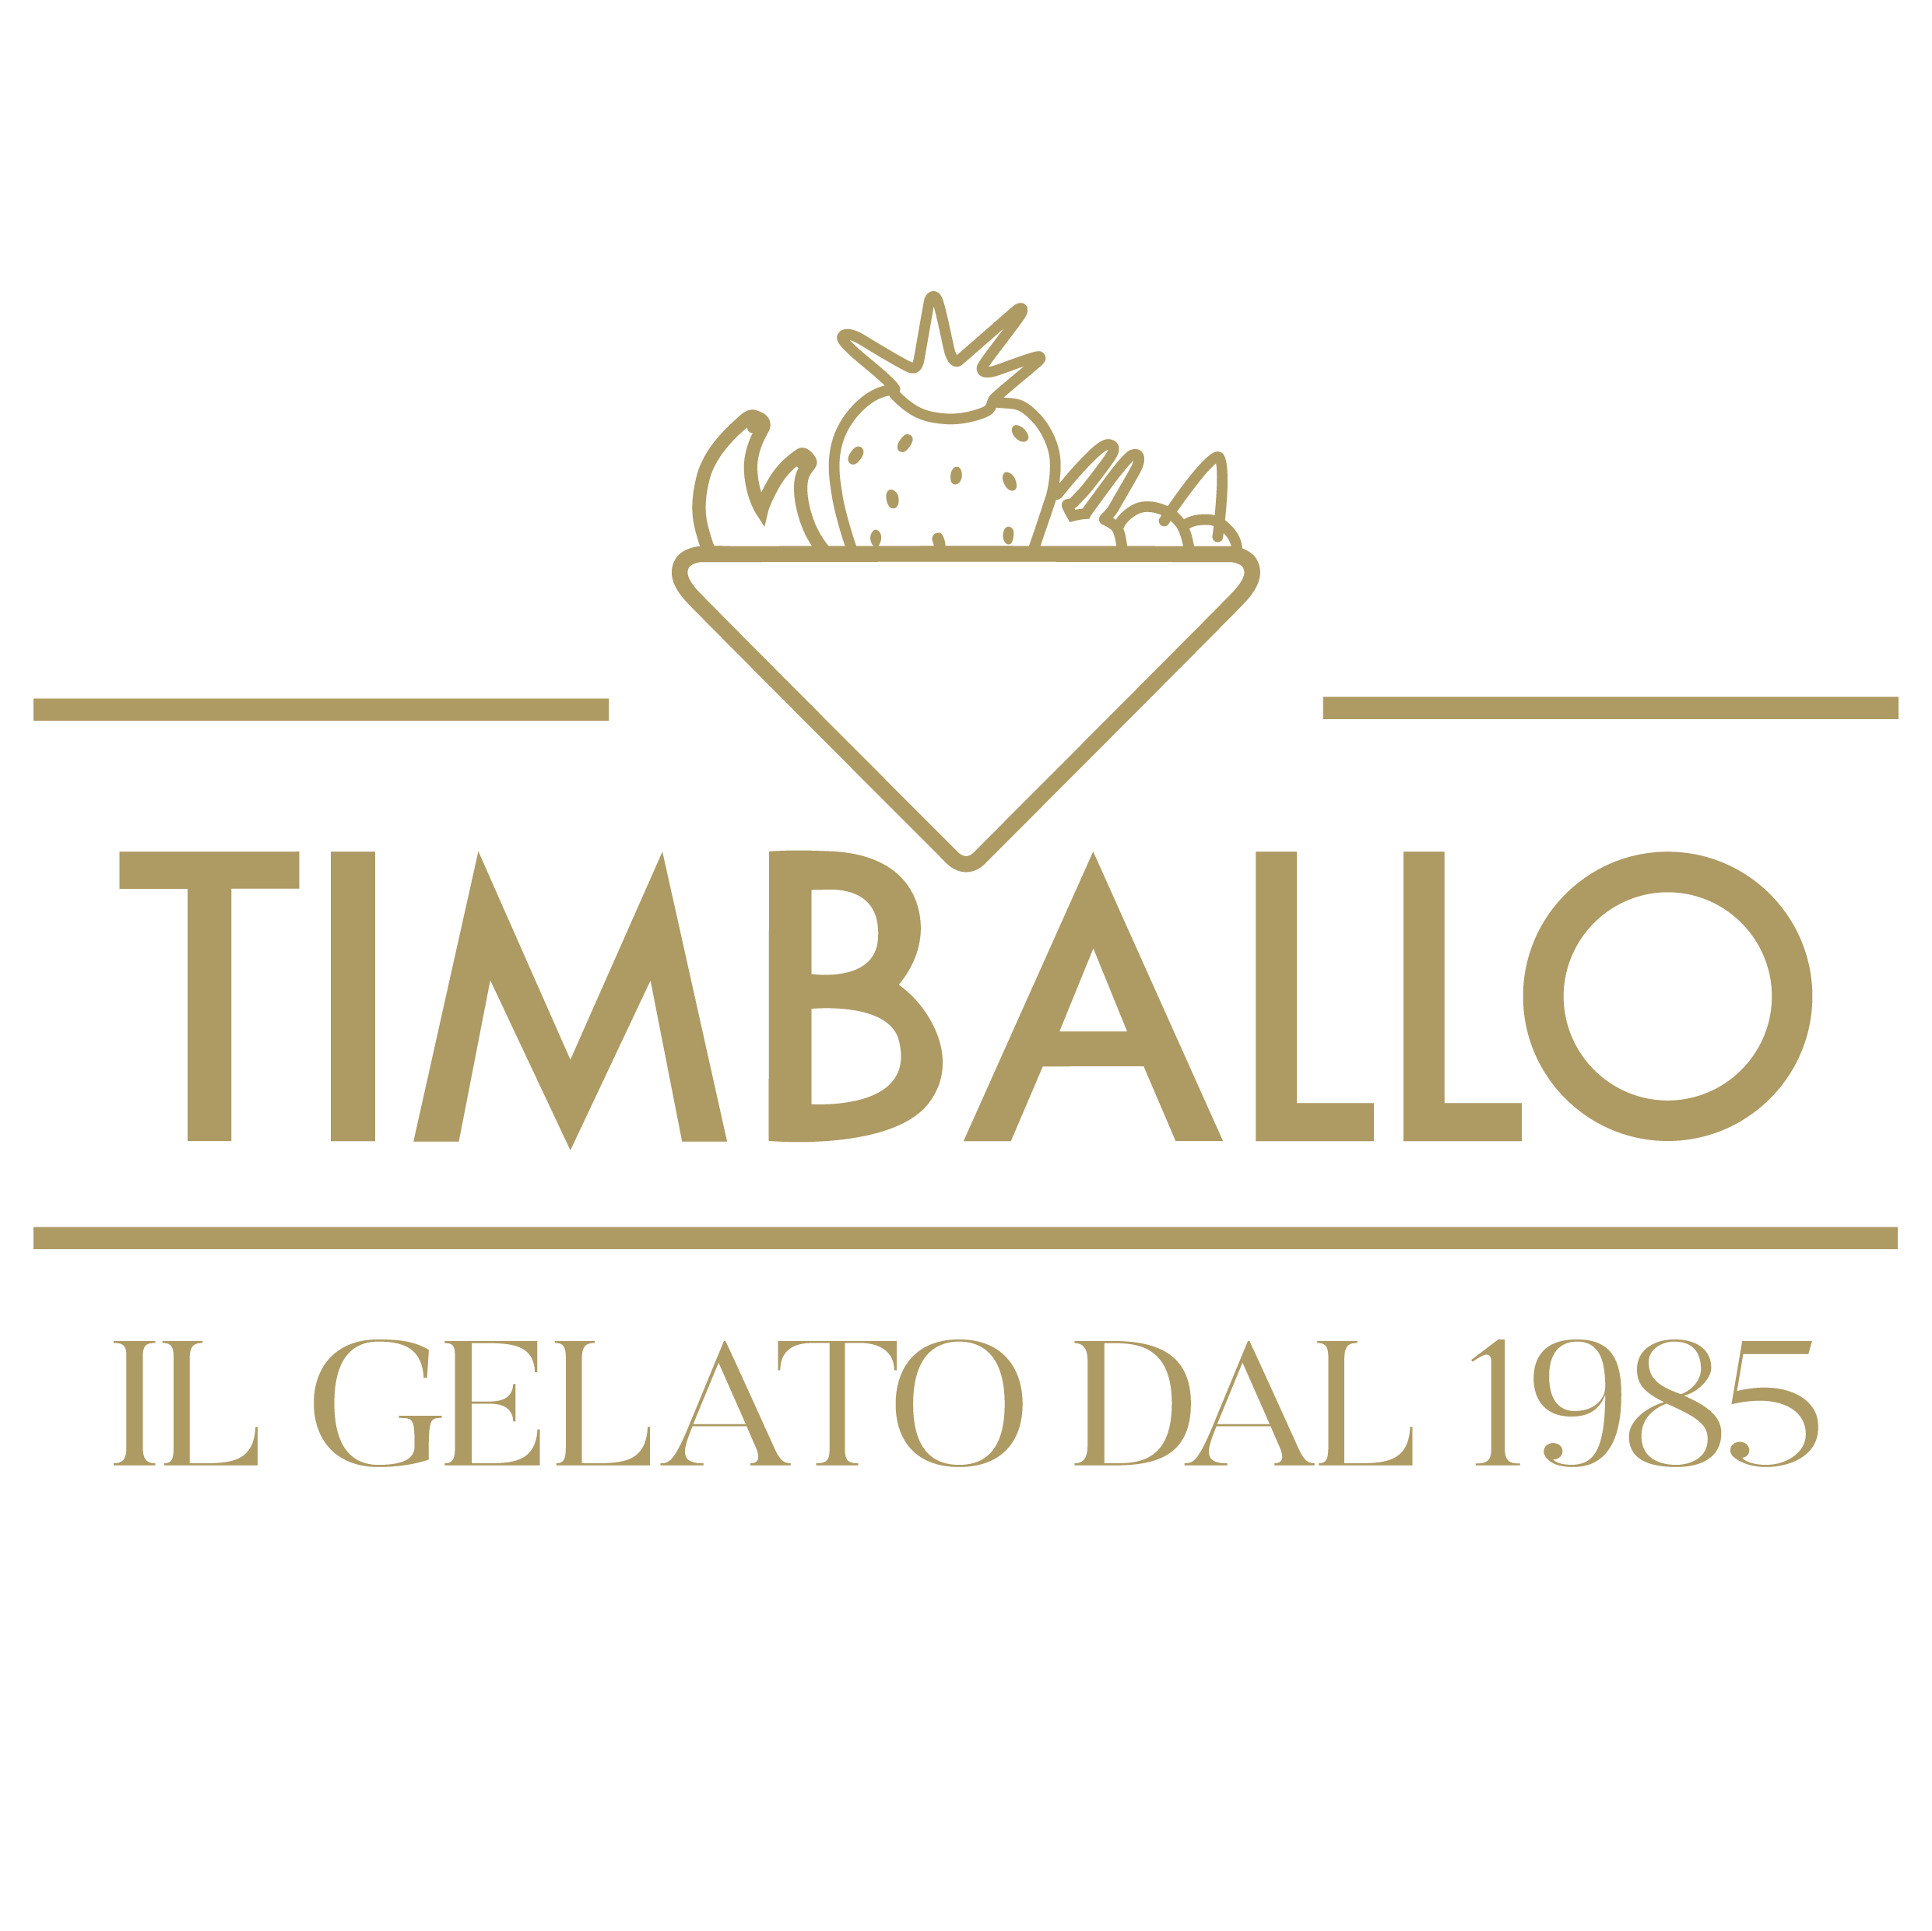 Gelateria Timballo